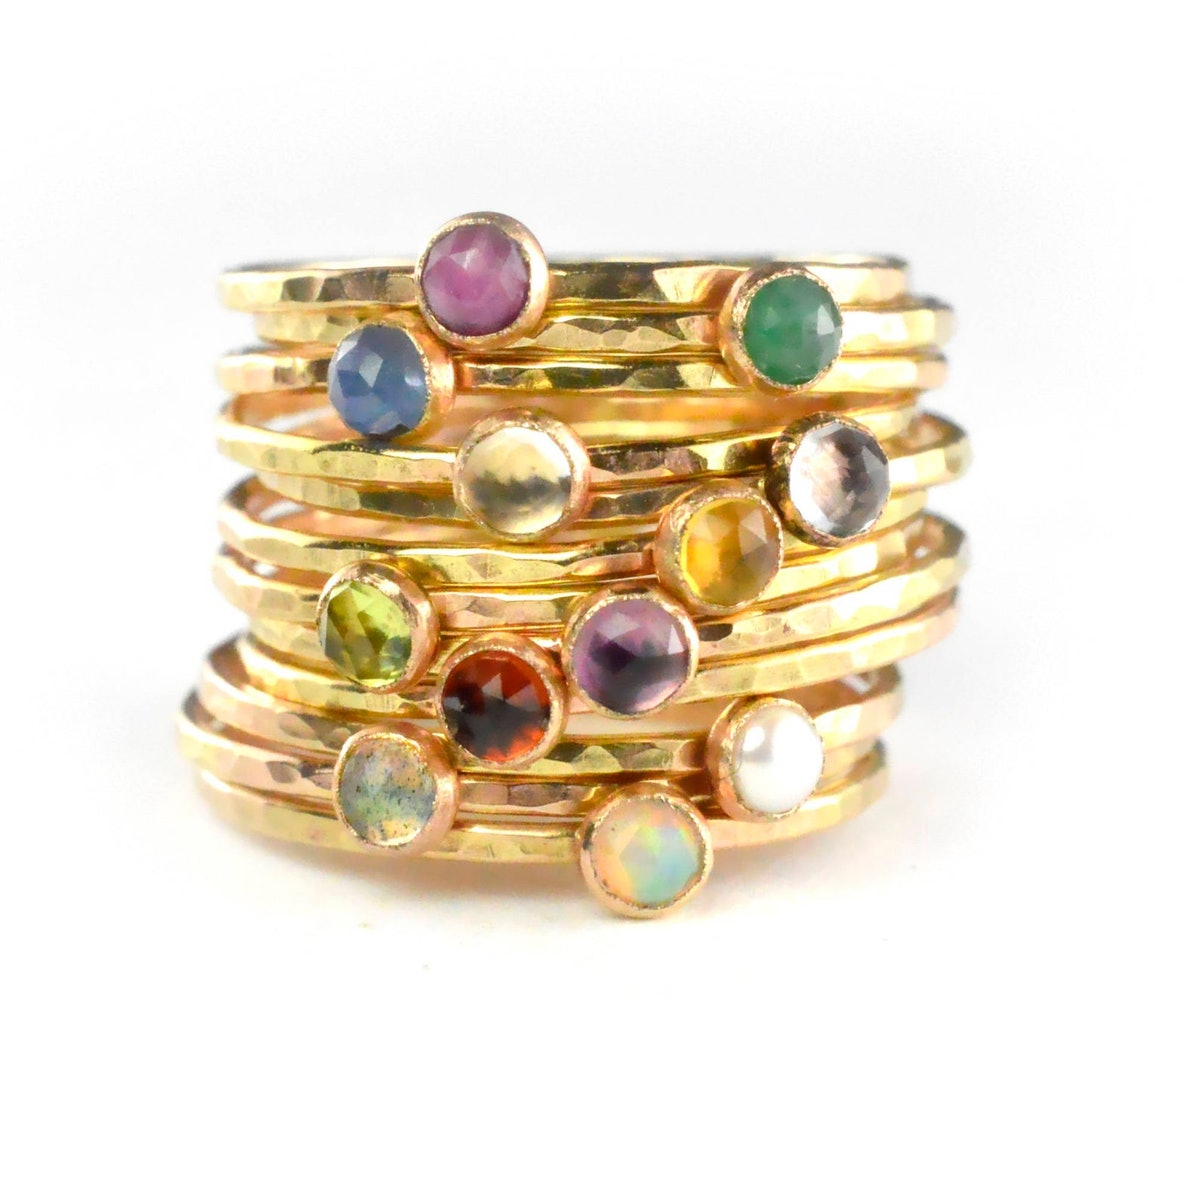 Aquarian Thoughts Birthstone Stacking Ring